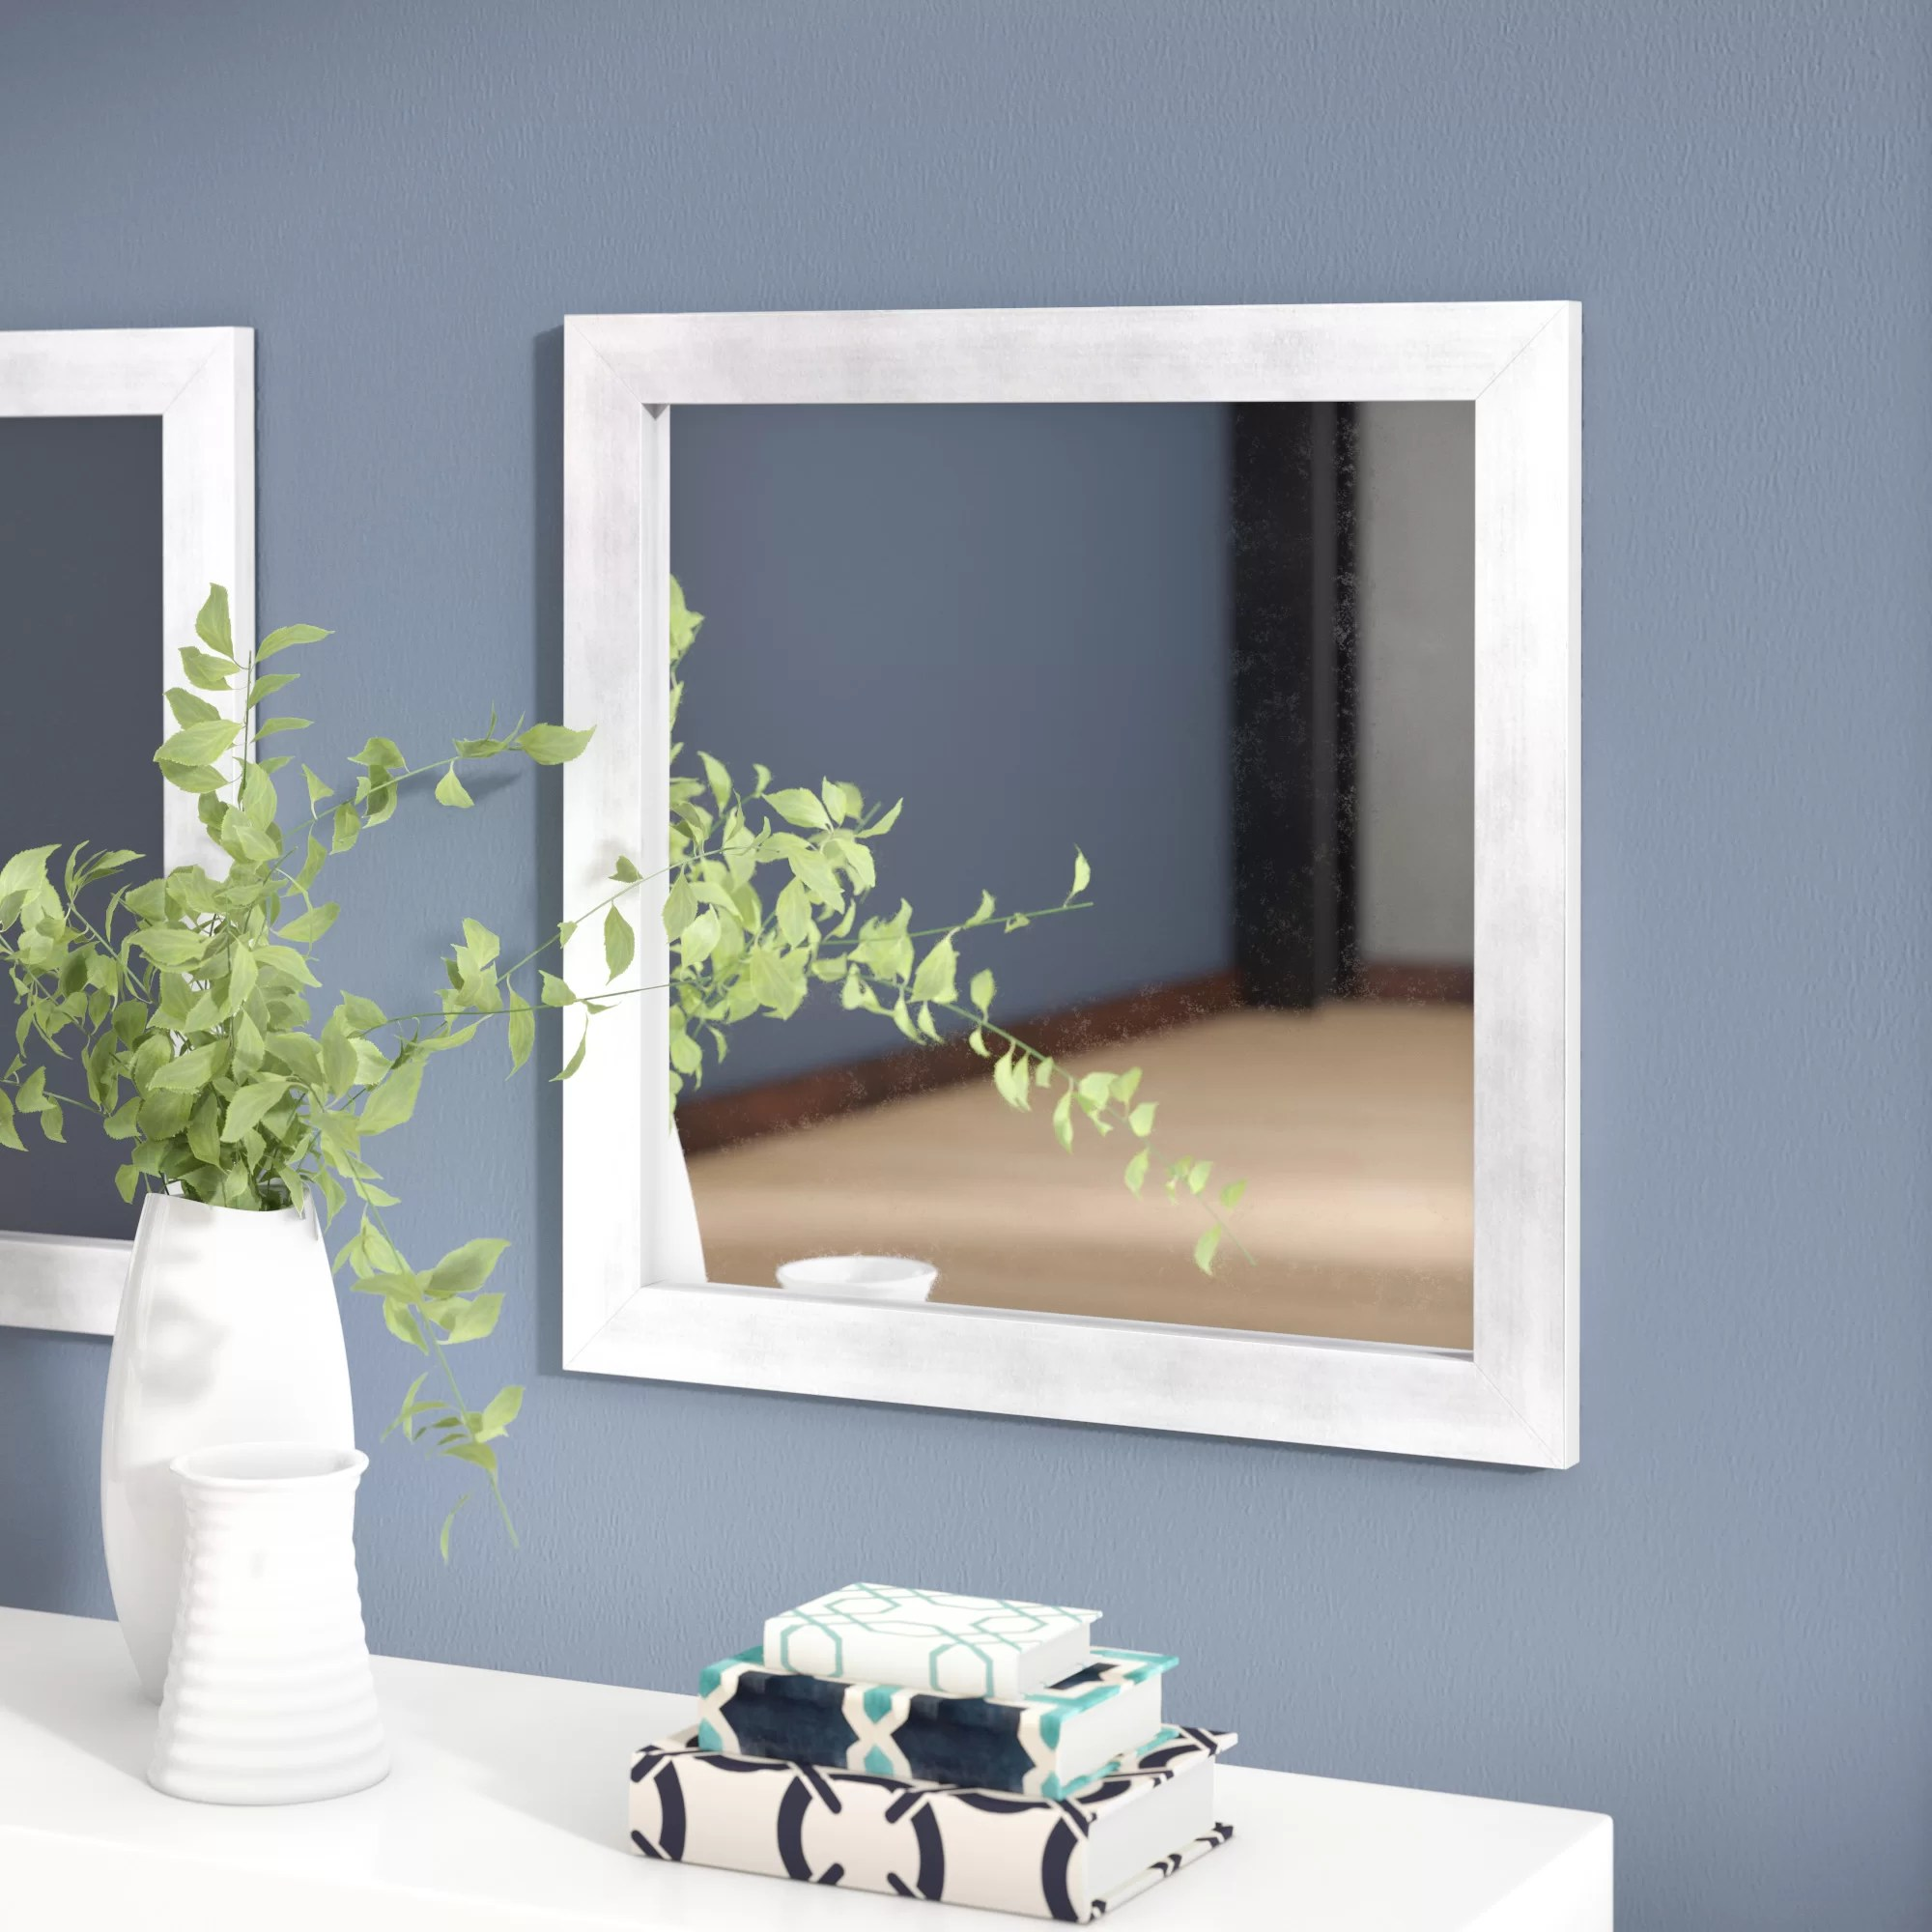 Square Hushed Modern And Contemporary Accent Wall Mirror